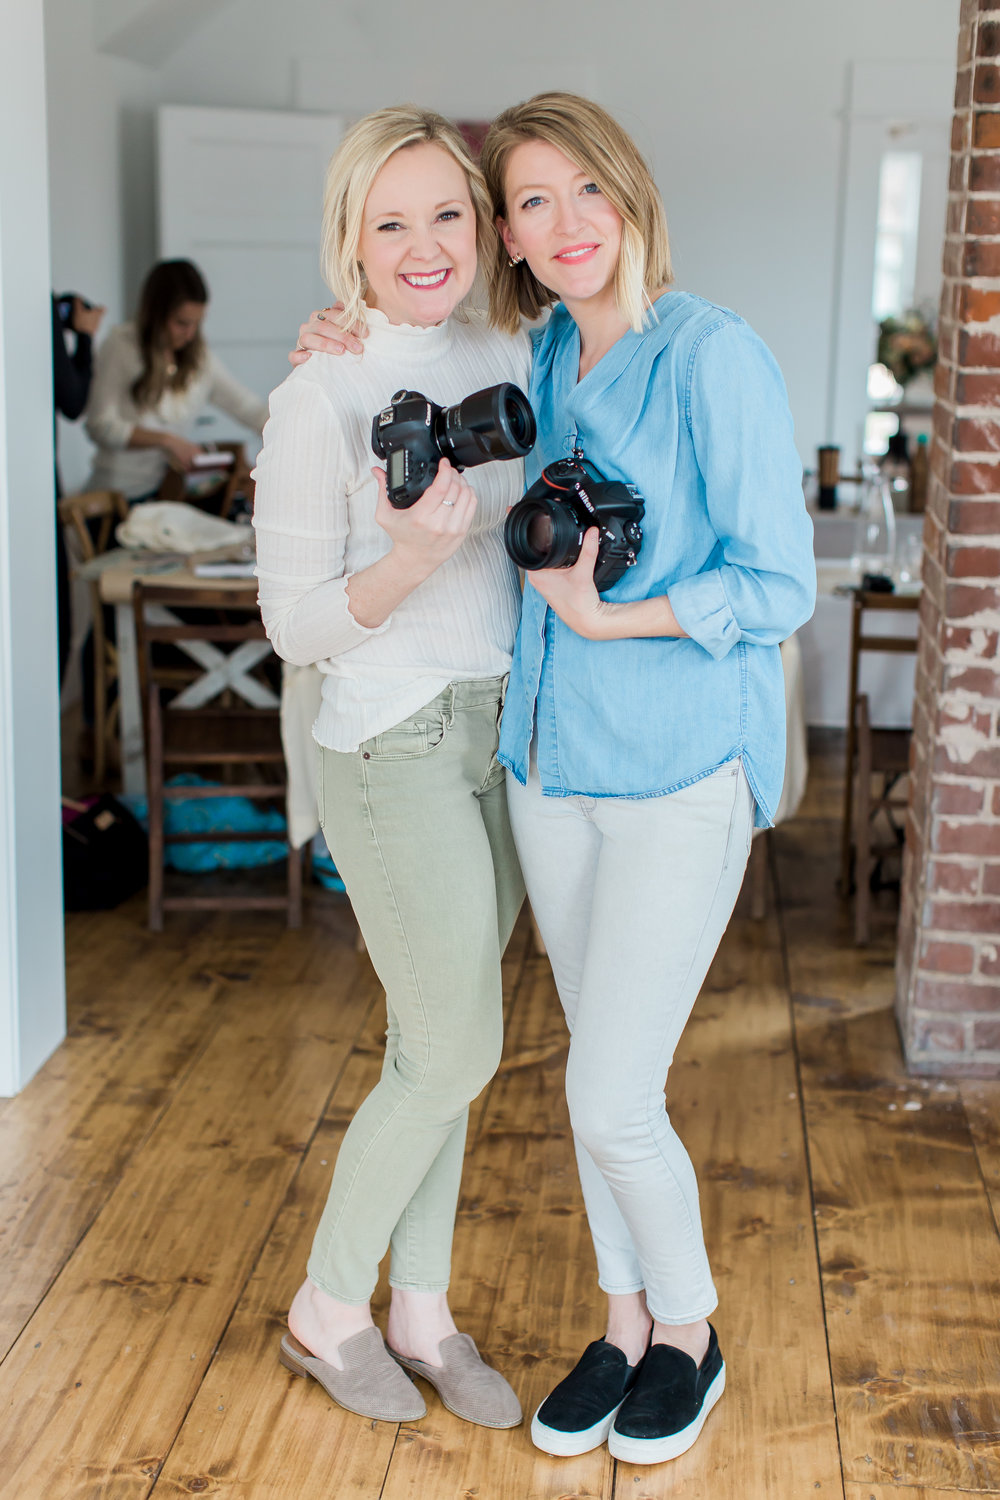 Angela Williams  and  Kacey Gilpin at Kindred Tulsa, Kindred Photography Workshop  Creators and Instructors